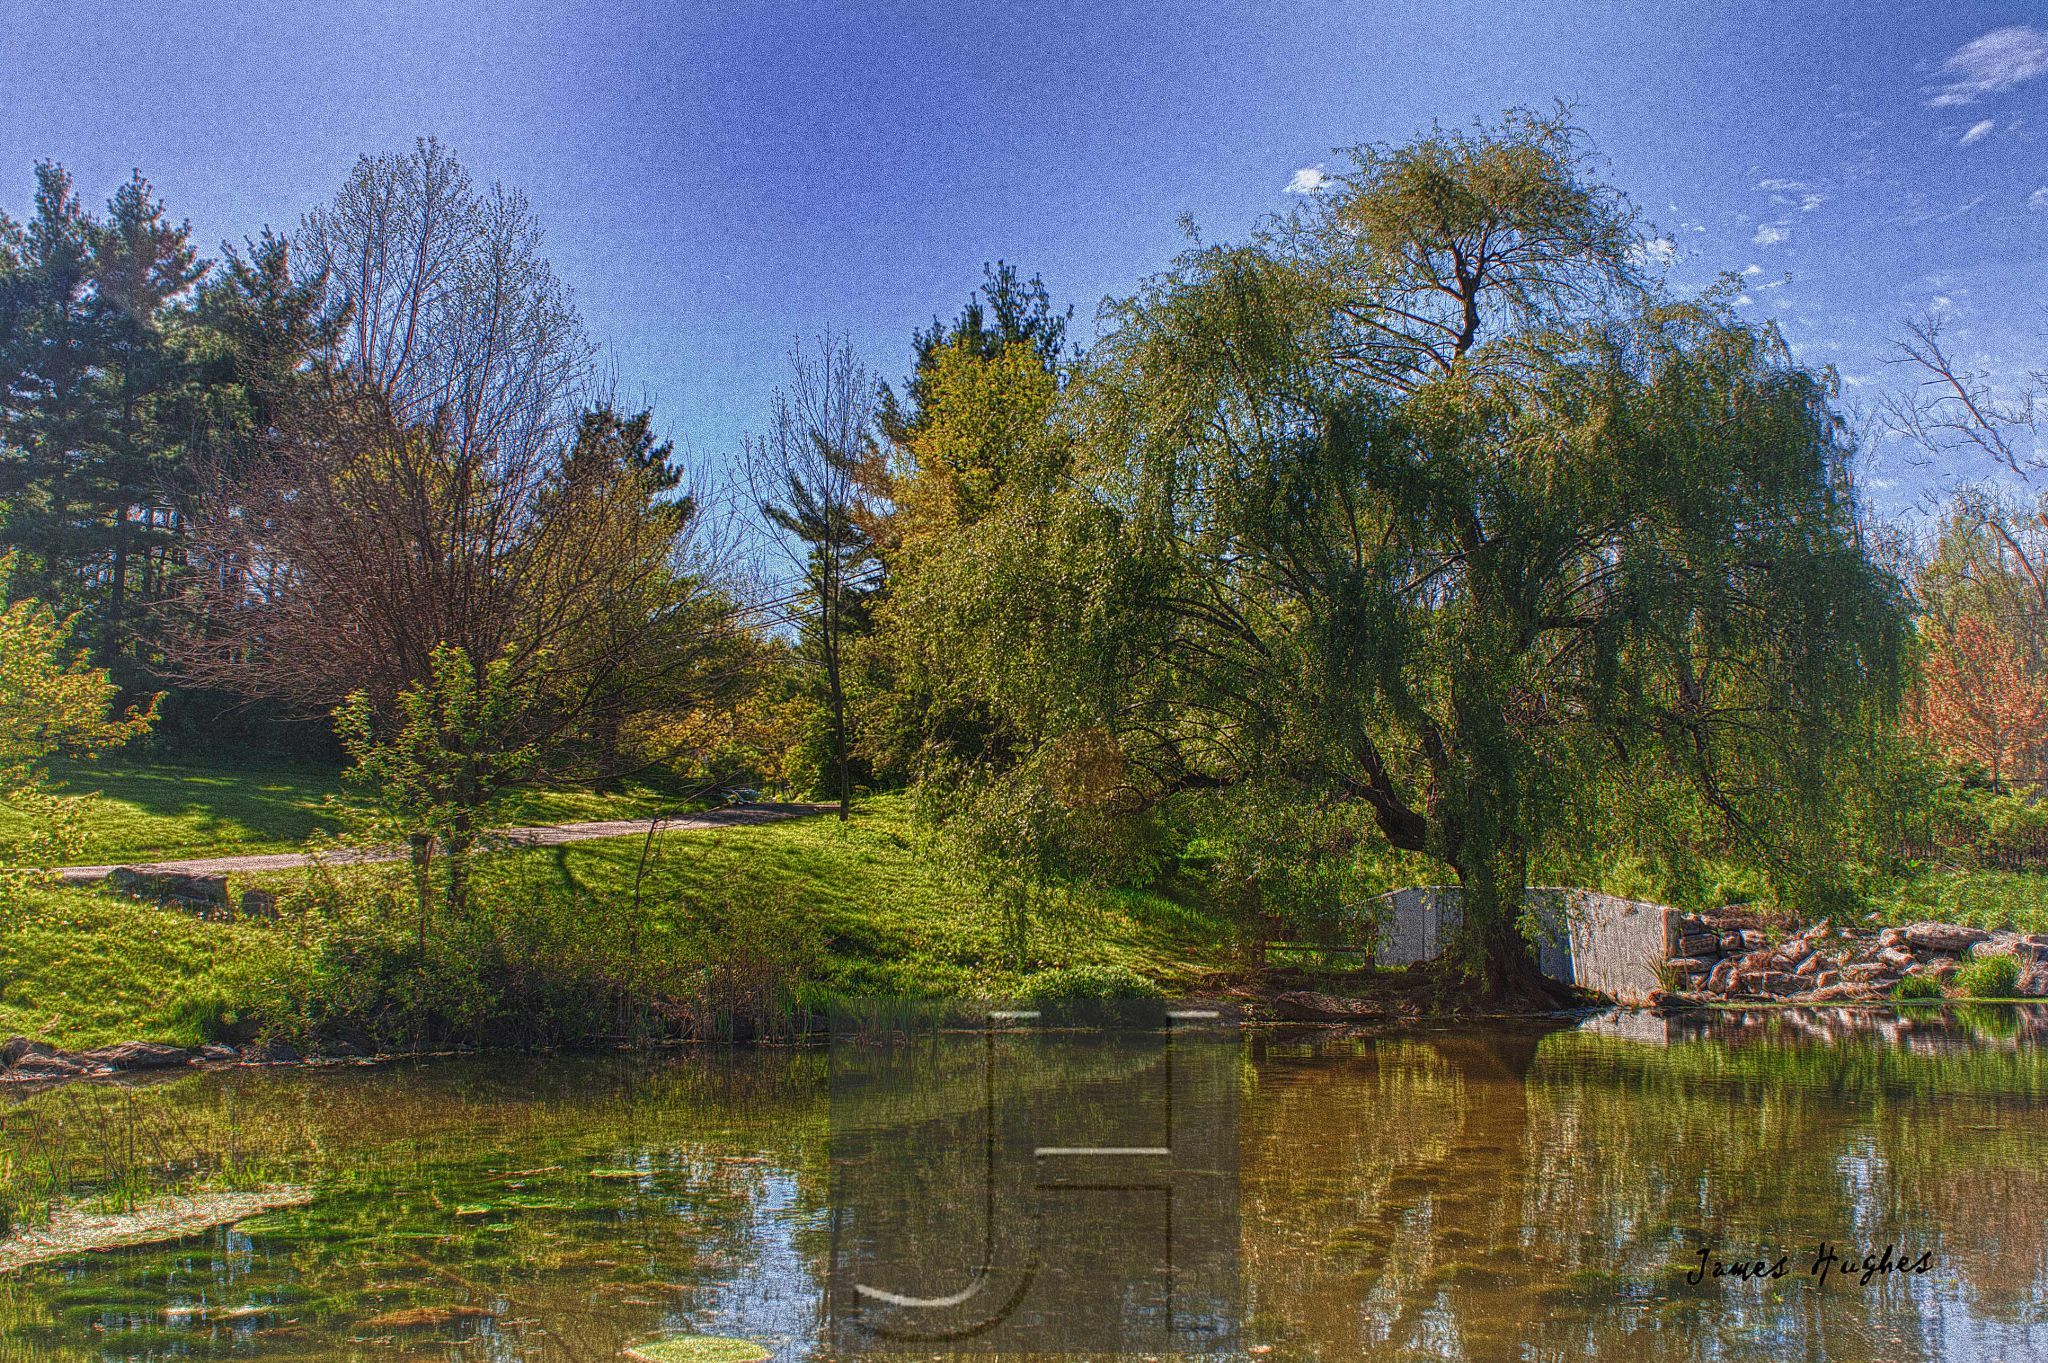 Pond by James Hughes Photography